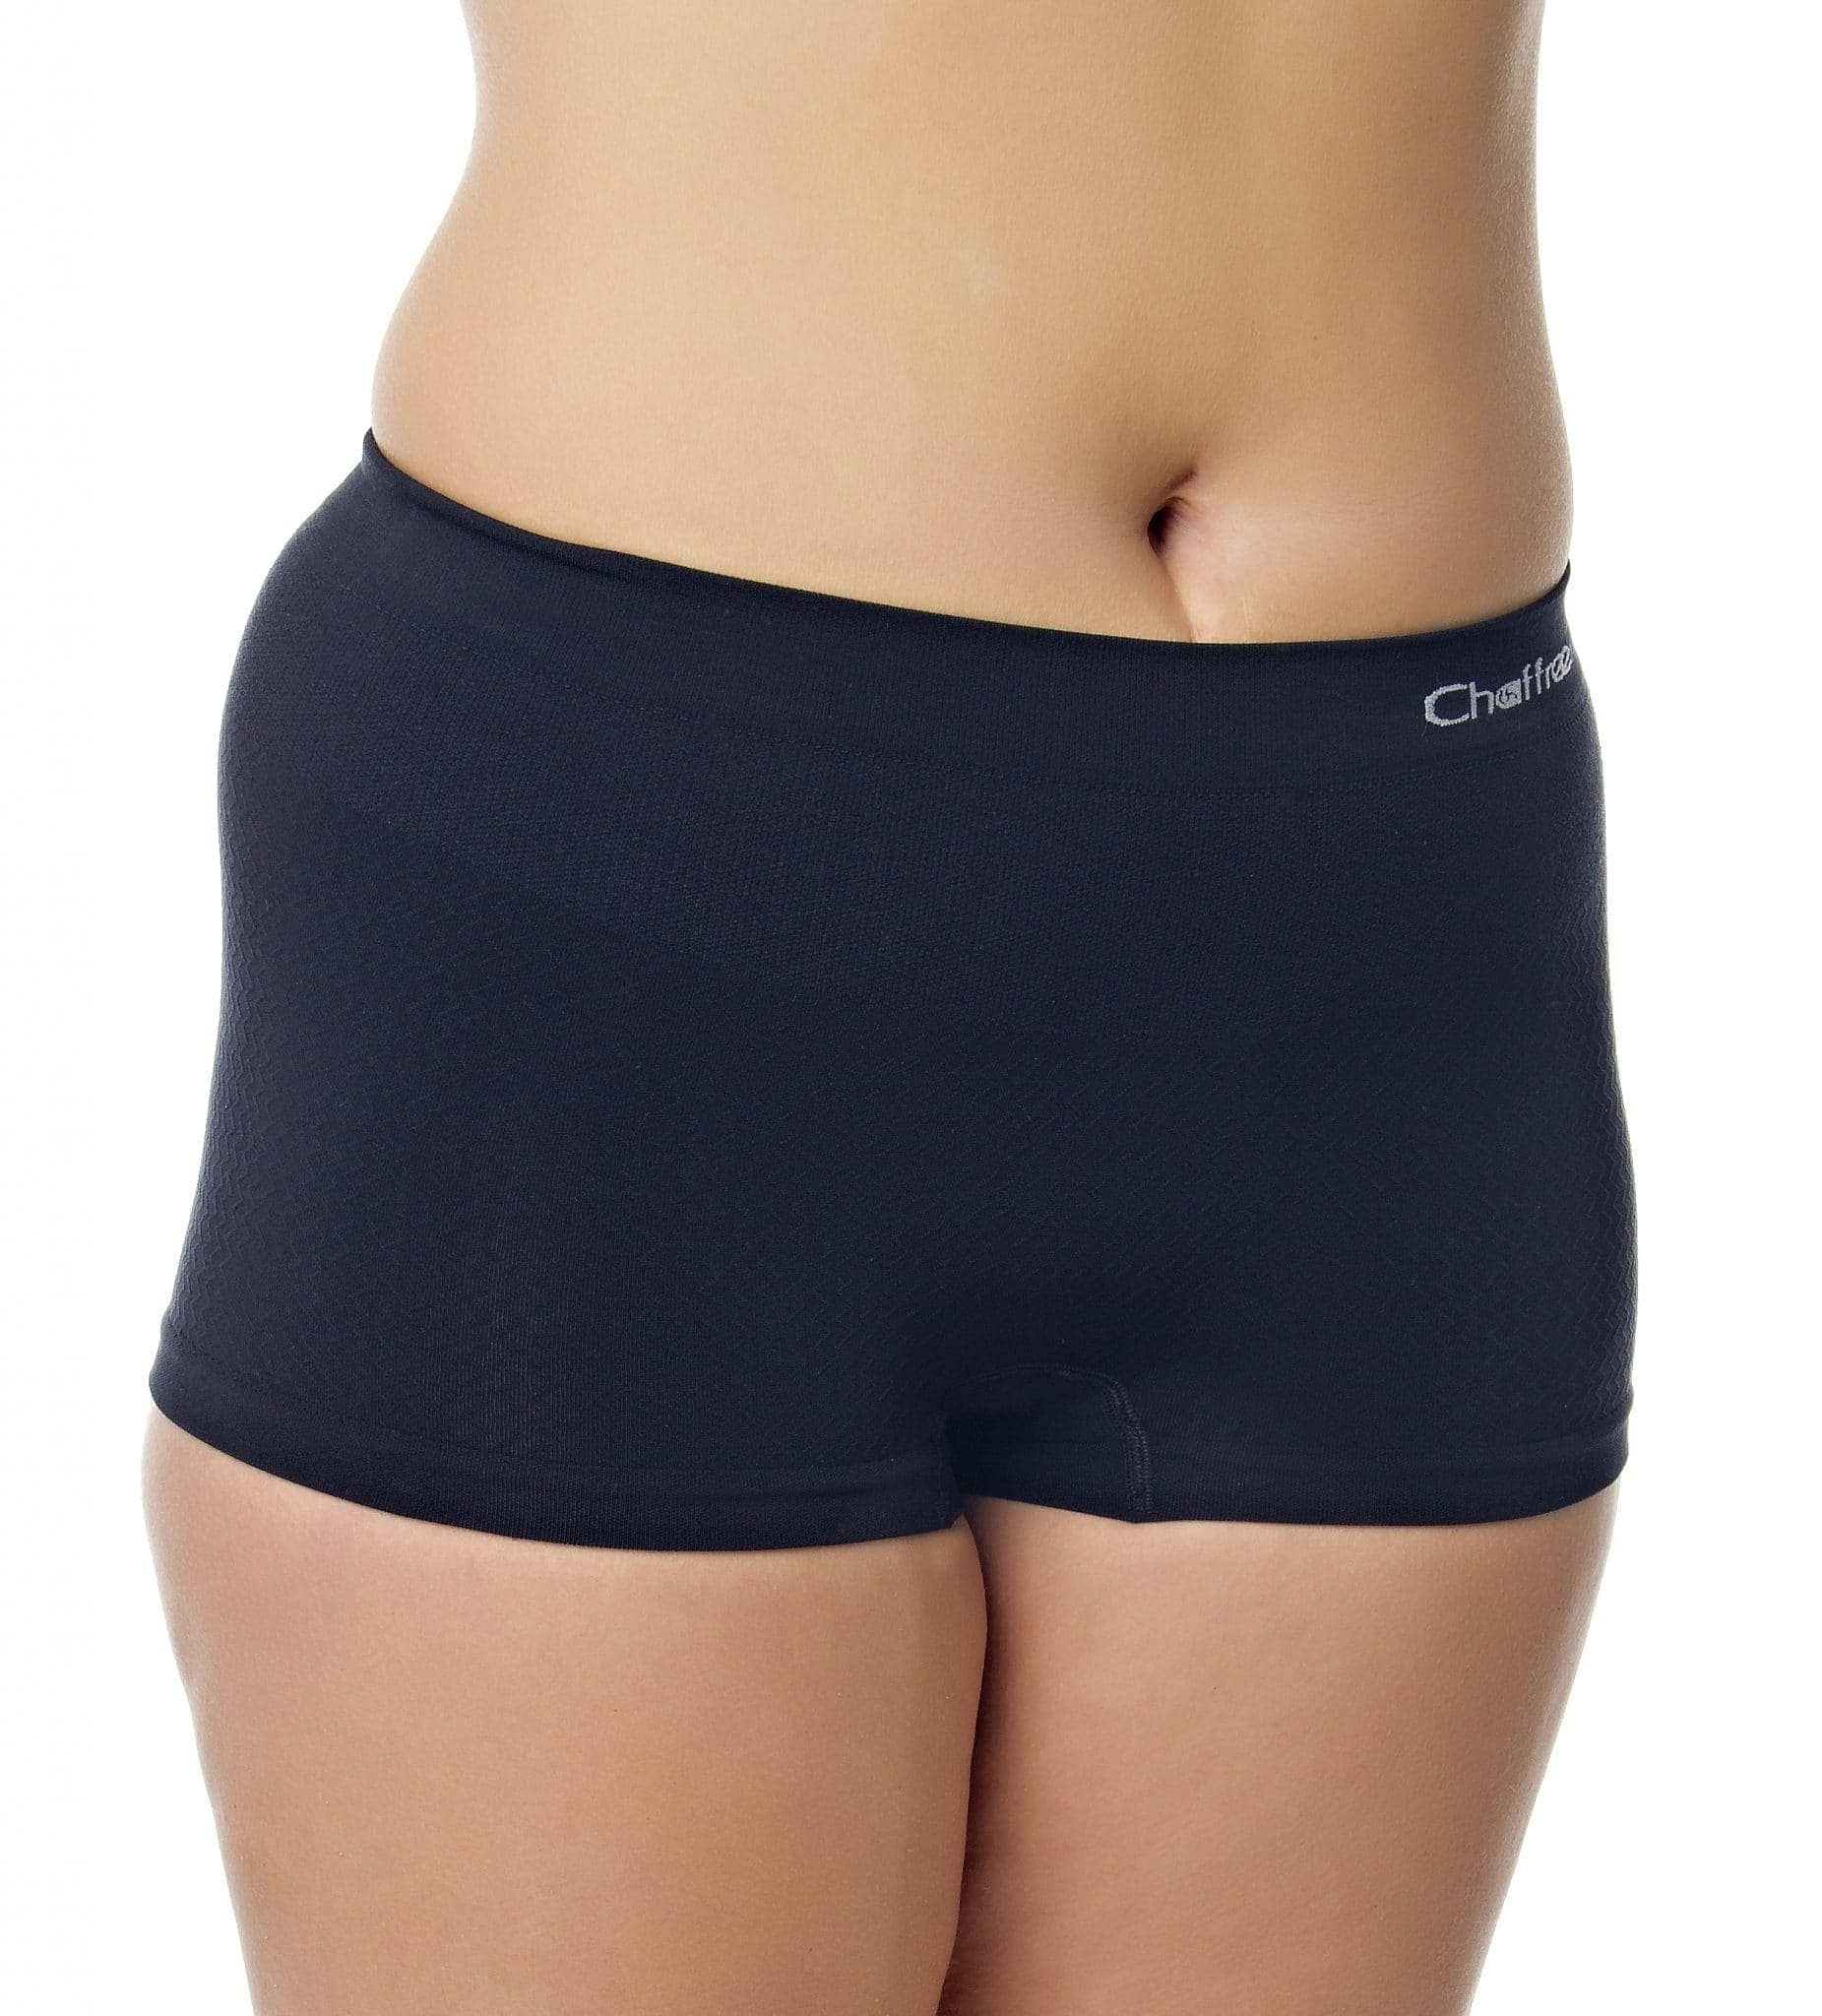 chaffree coolmax underwear womens boxer briefs